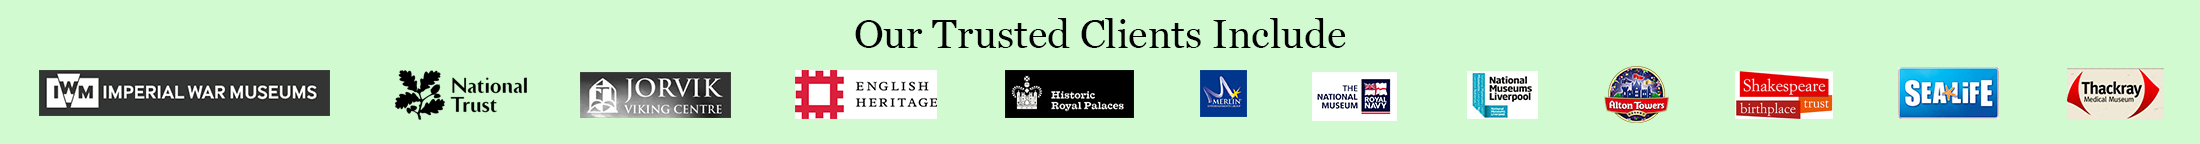 homepage-clients-long.png